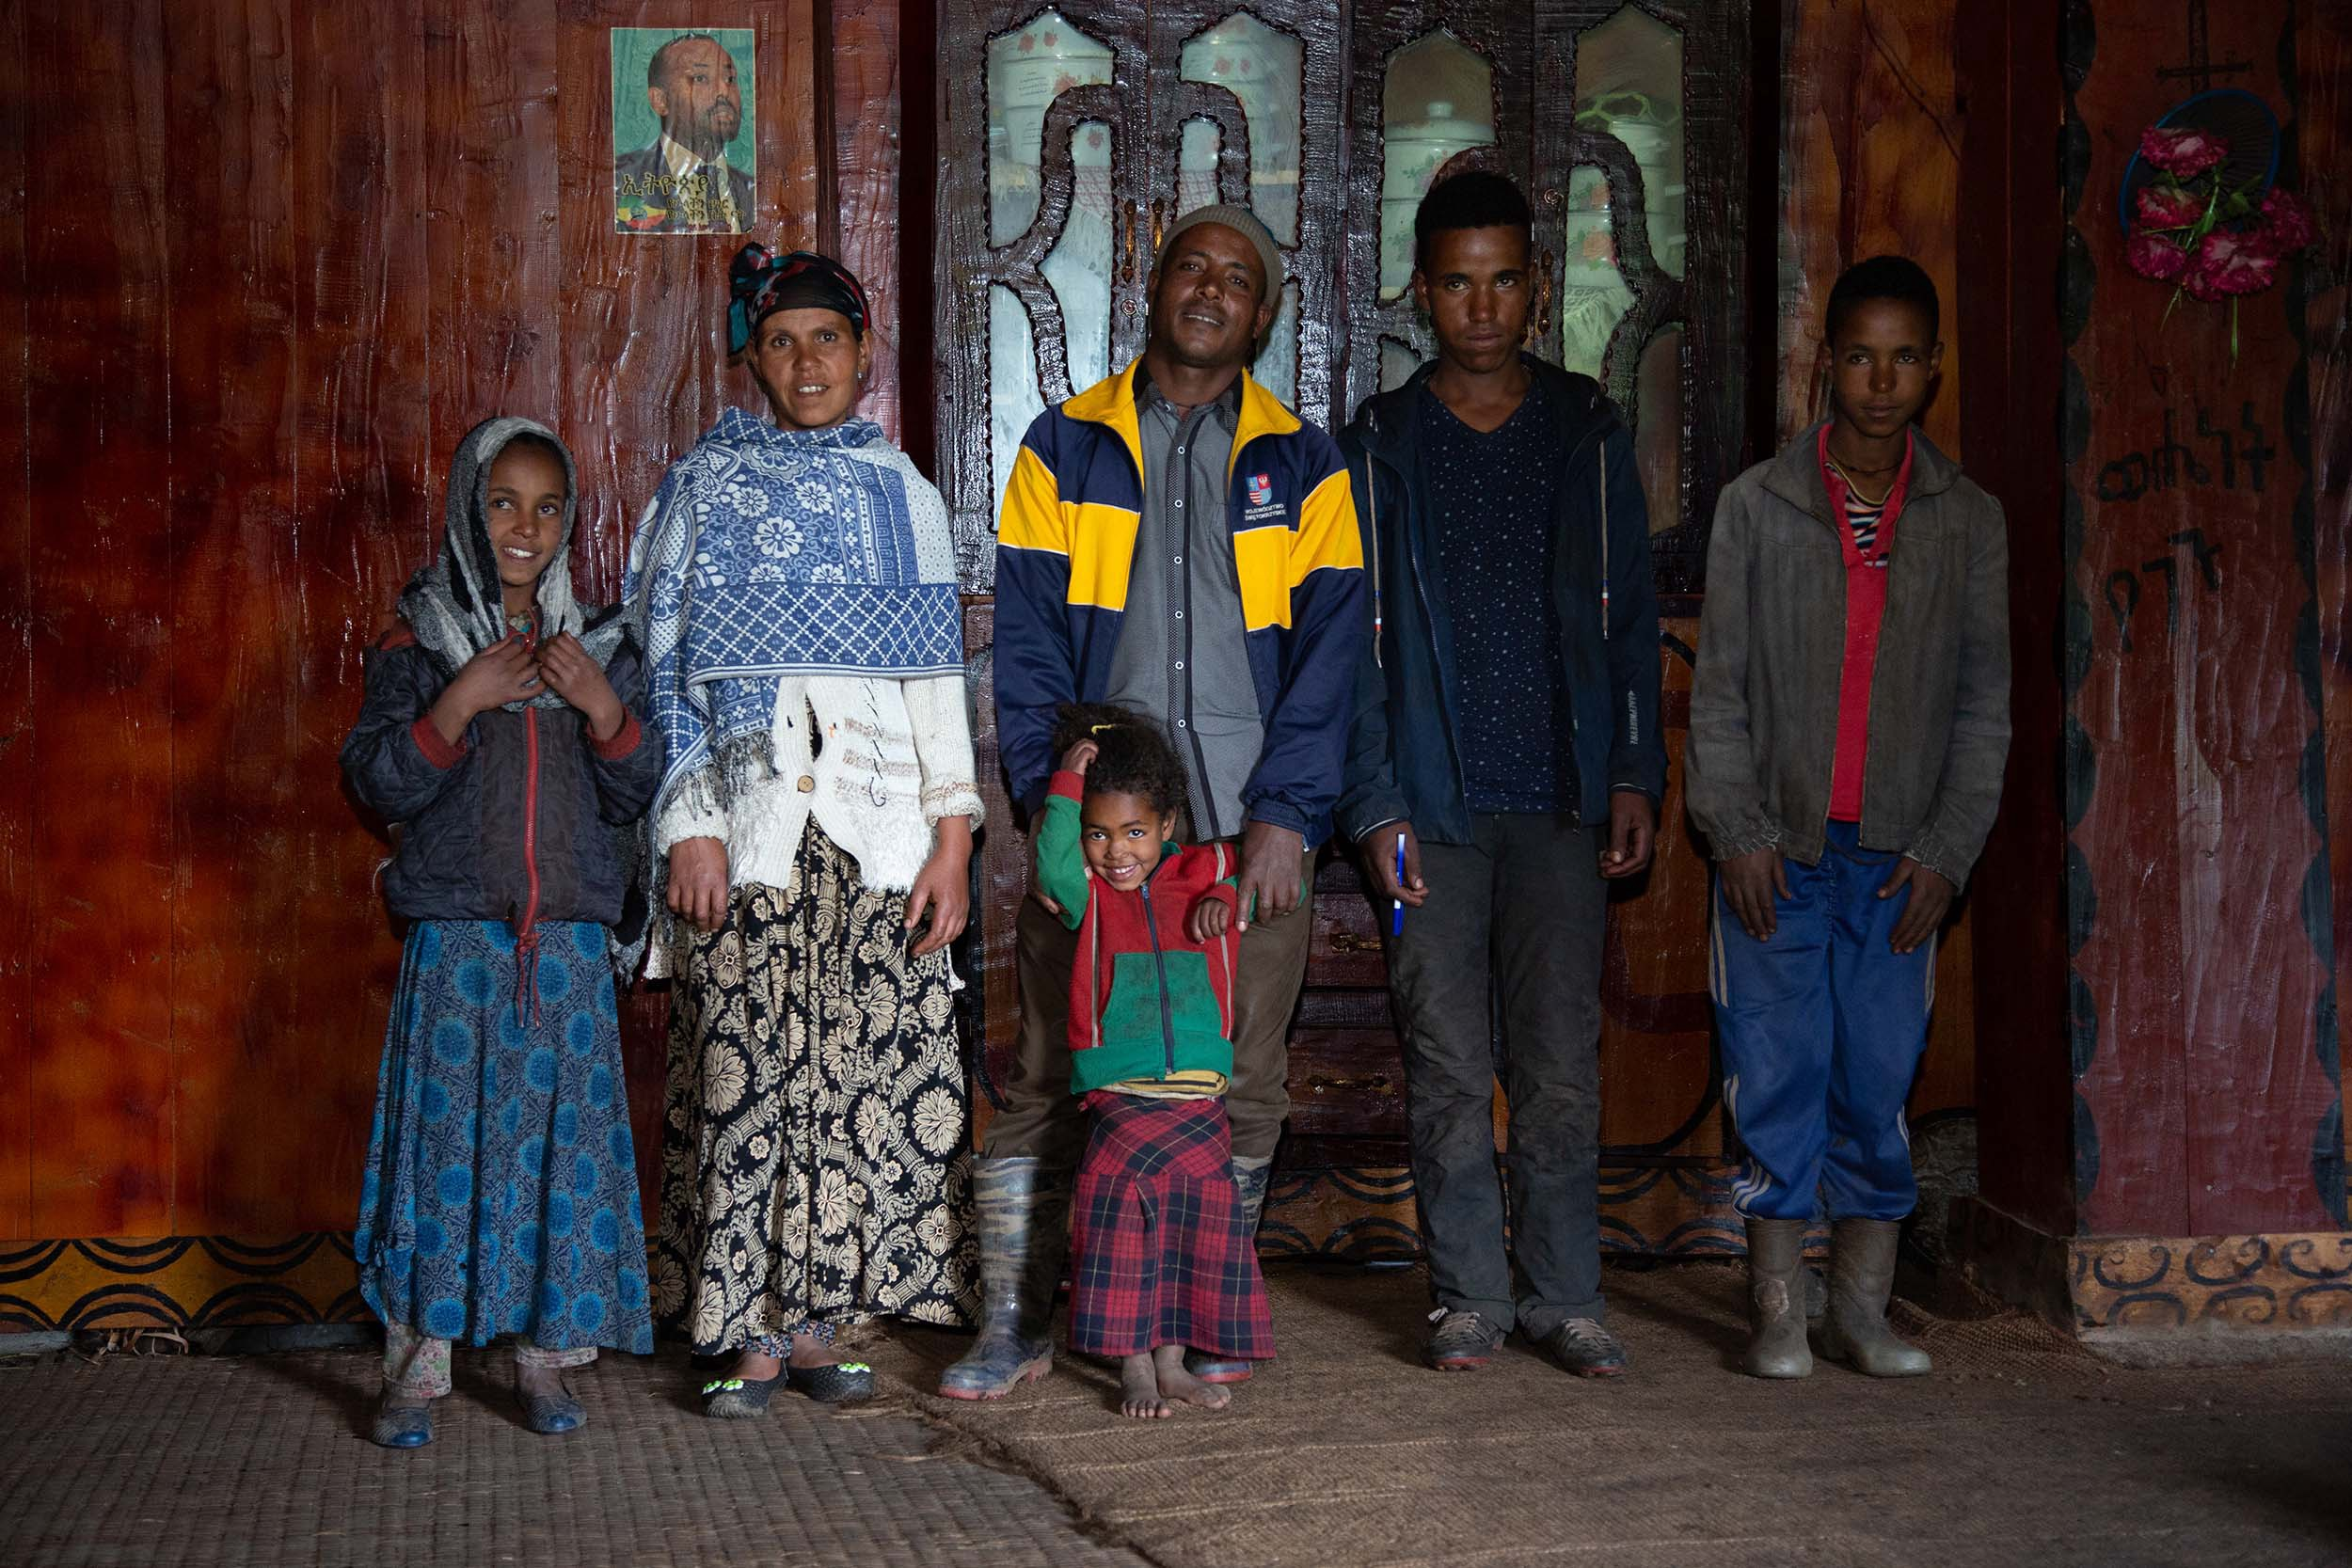 Nega Girma, from Muher Aklil in Ethiopia, with his family.